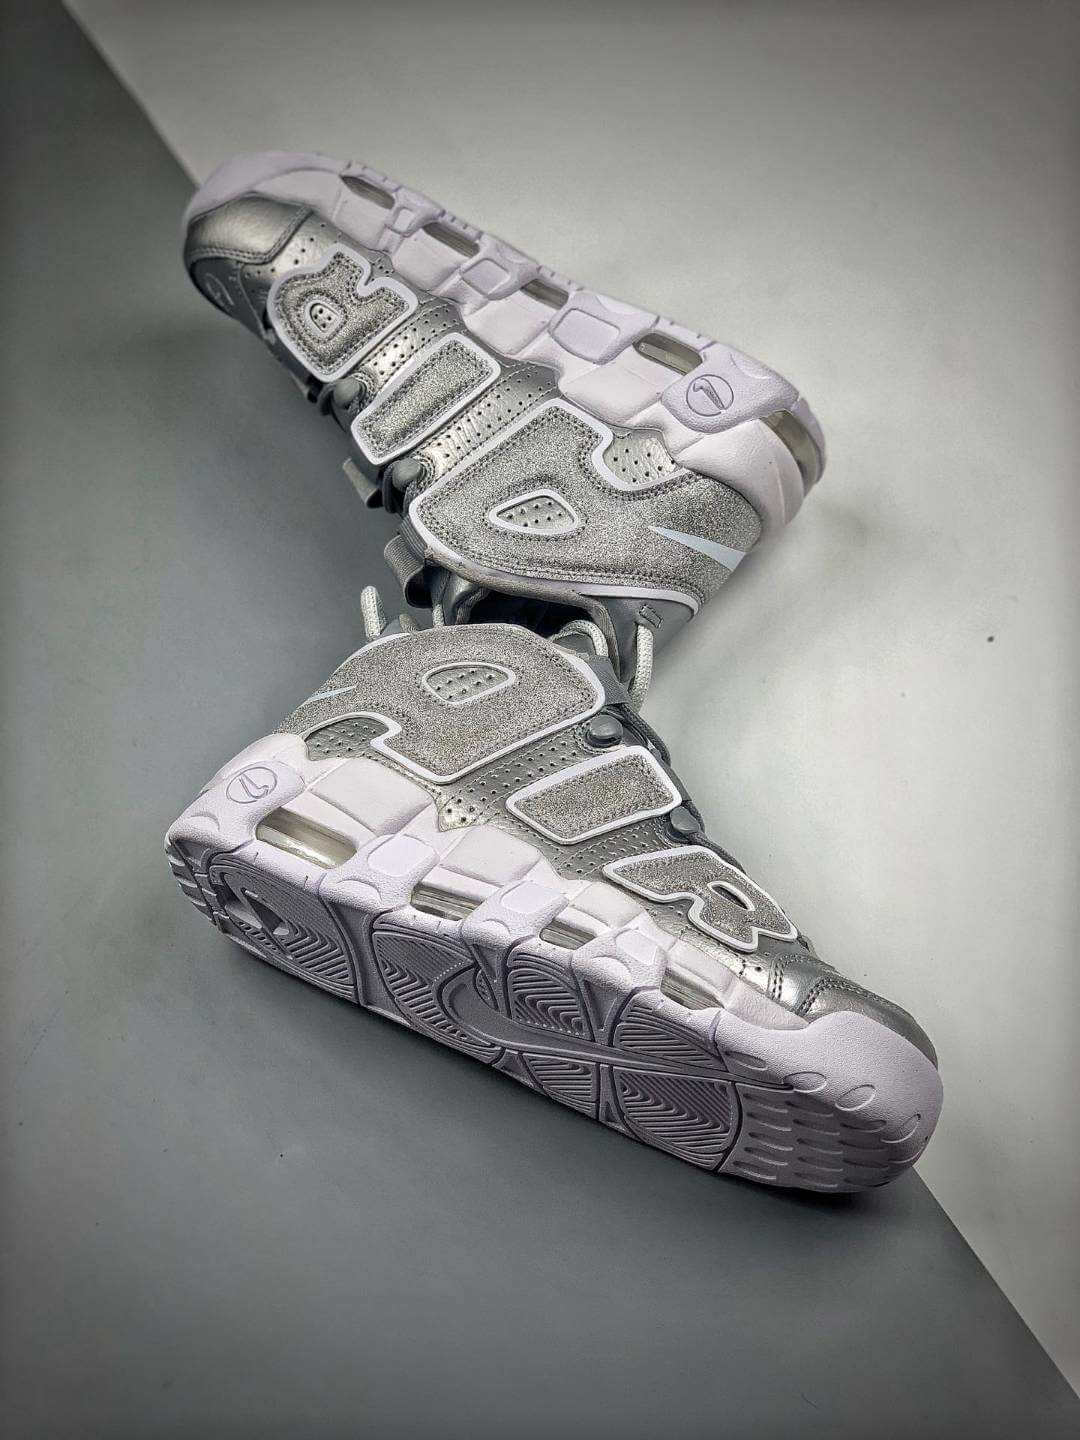 The Nike Air More Uptempo Loud and Clear Basketball Shoes Metallic Silver Leather Upper Quality RepSneaker 08